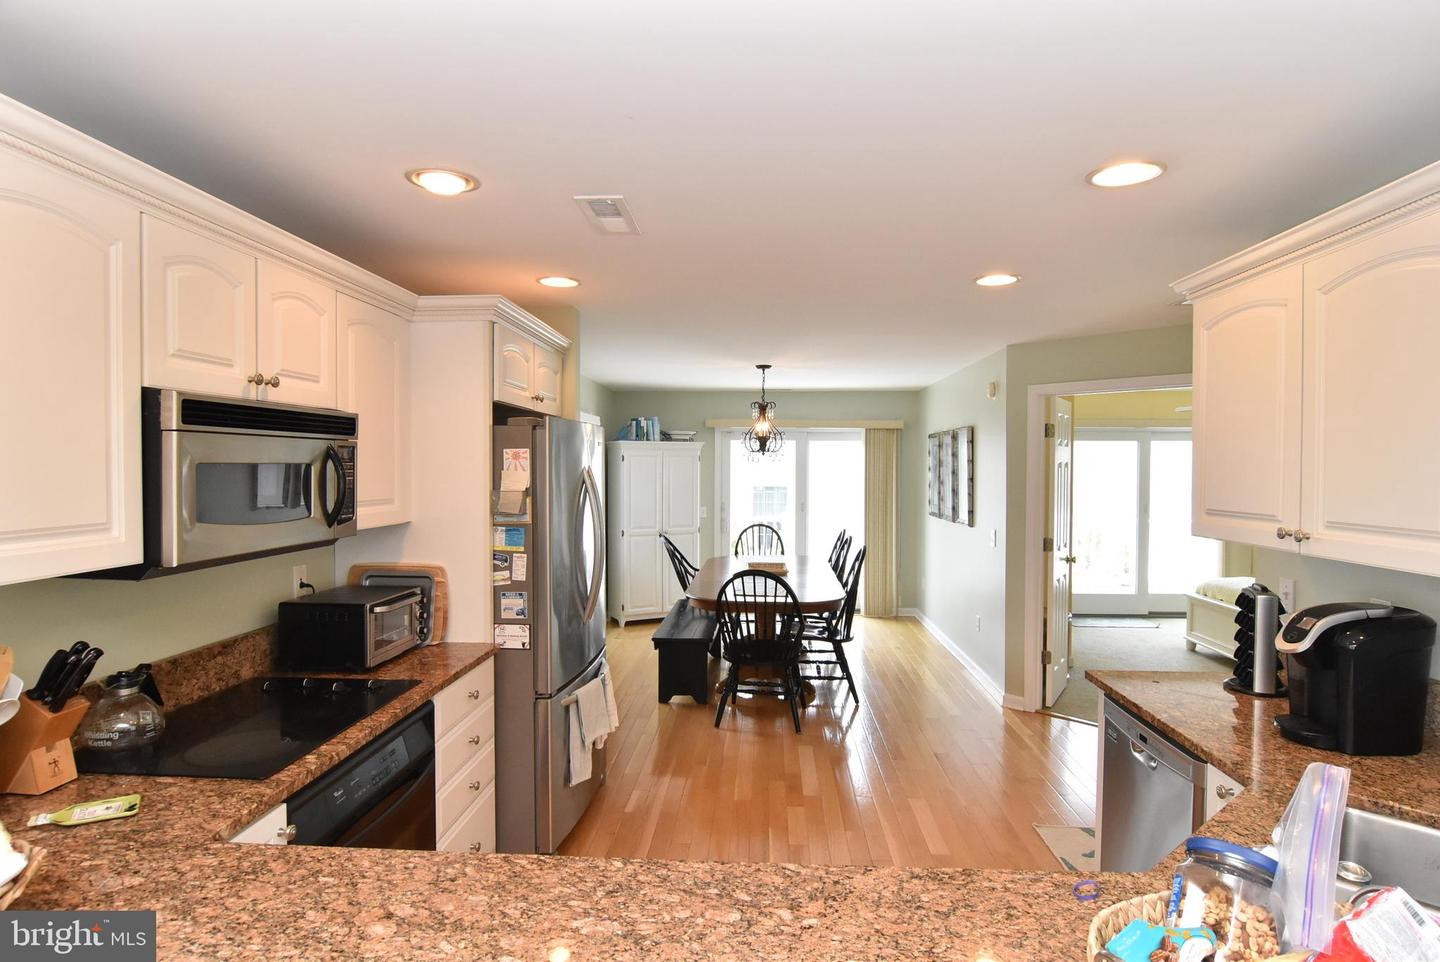 DESU141210-301754684123-2019-05-30-08-28-54 87 N Atlantic Ave | Bethany Beach, De Real Estate For Sale | MLS# Desu141210  - Suzanne Macnab